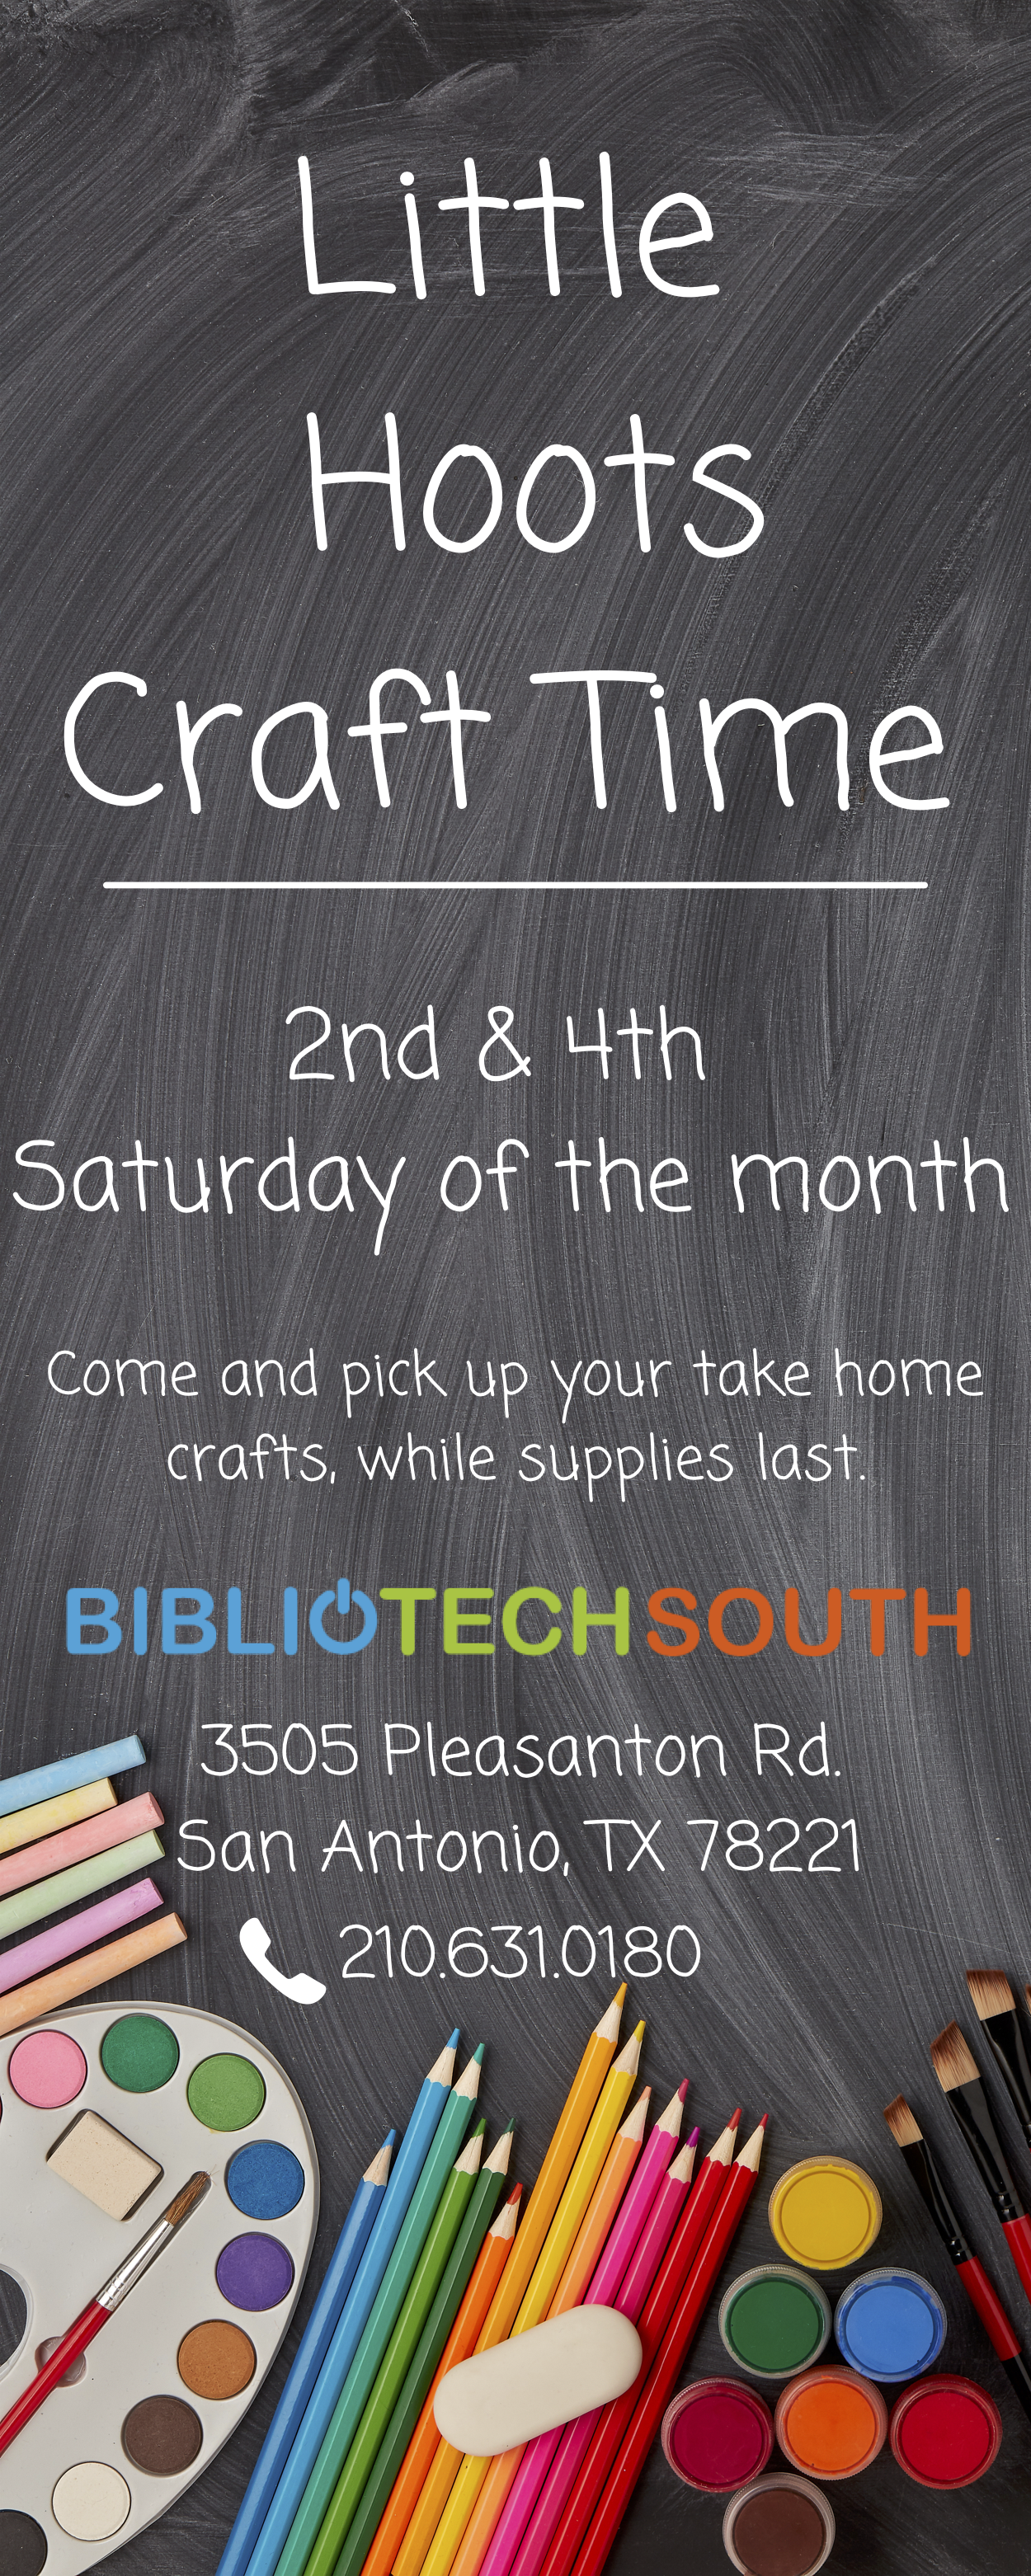 Little Hoots Craft Time - South Branch